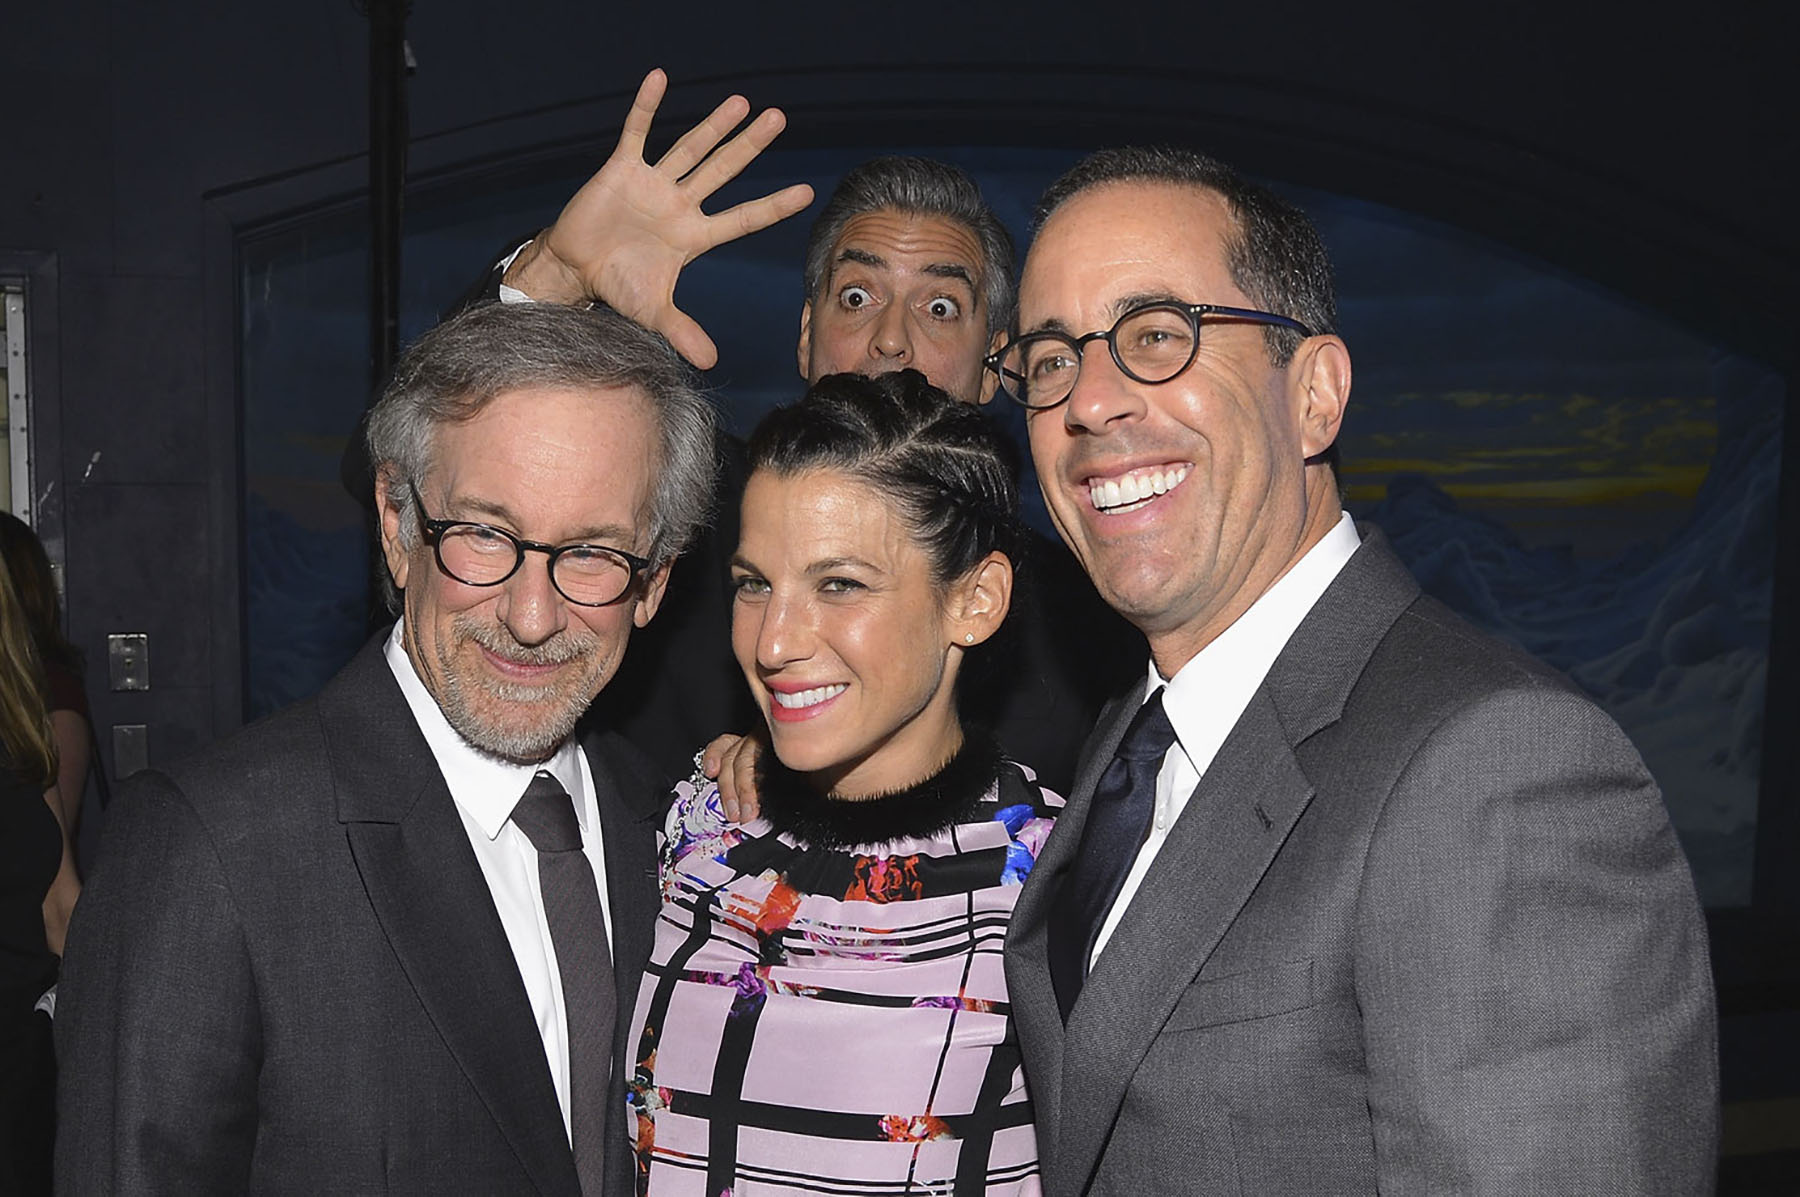 George Clooney Photo Bomb